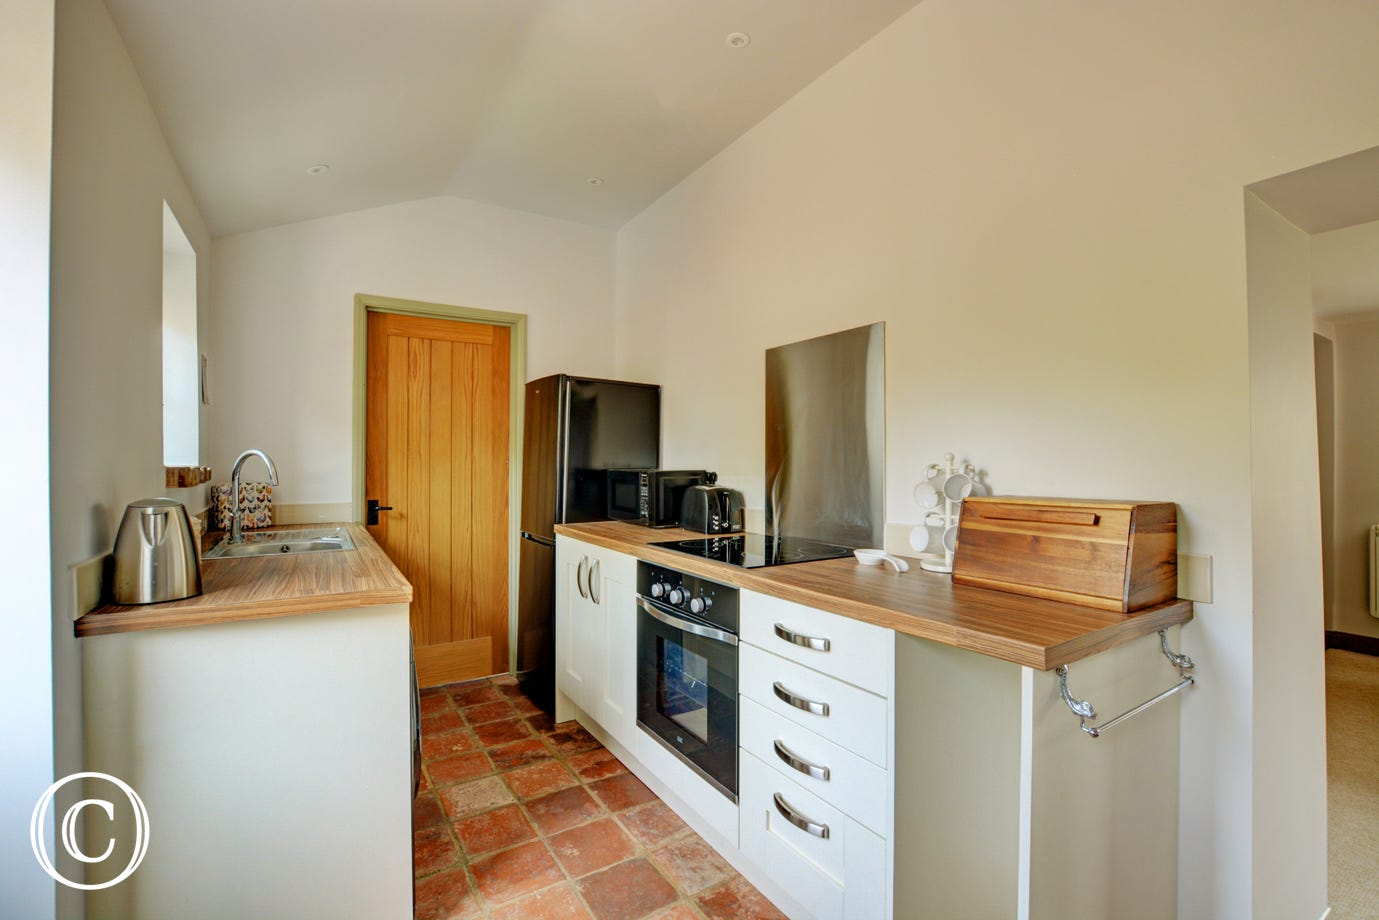 Attractive kitchen with built in oven and hob